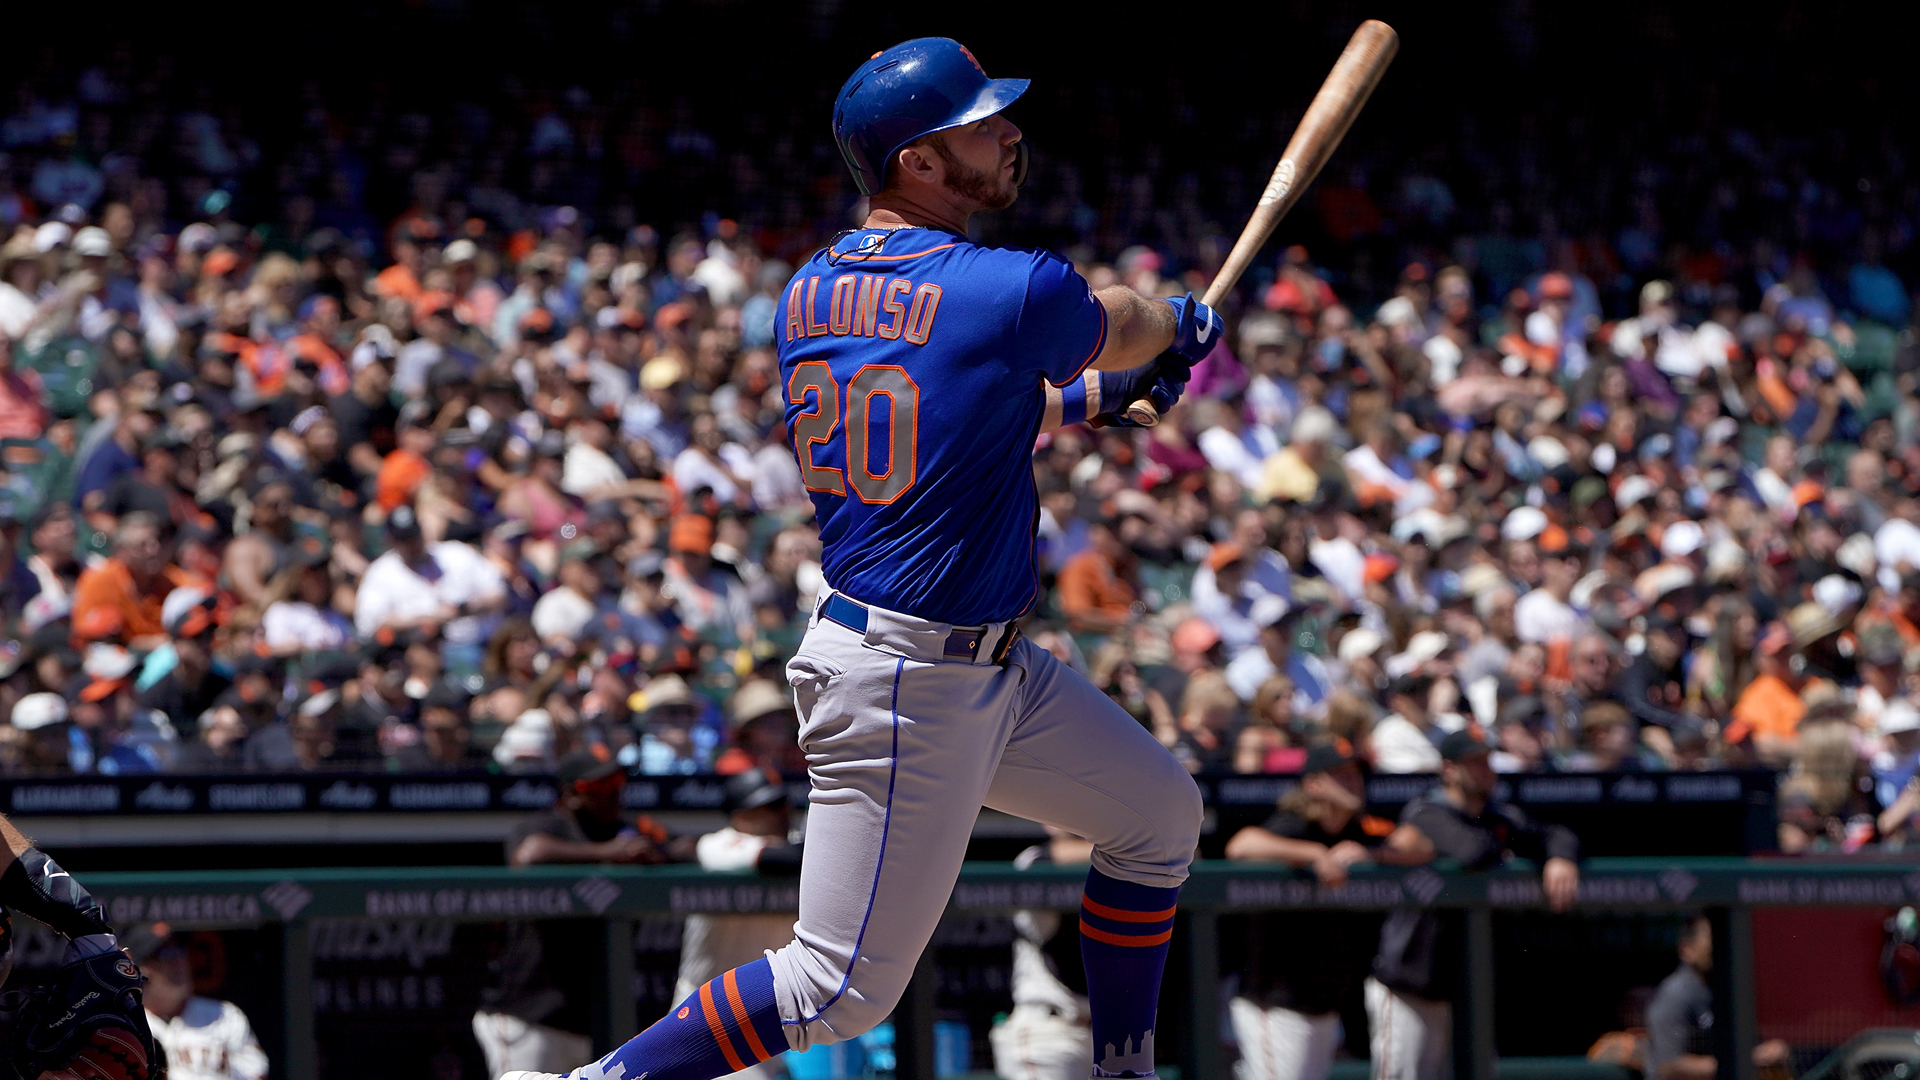 MLB wrap: Dominic Smith, Pete Alonso shine in Mets' win over Giants